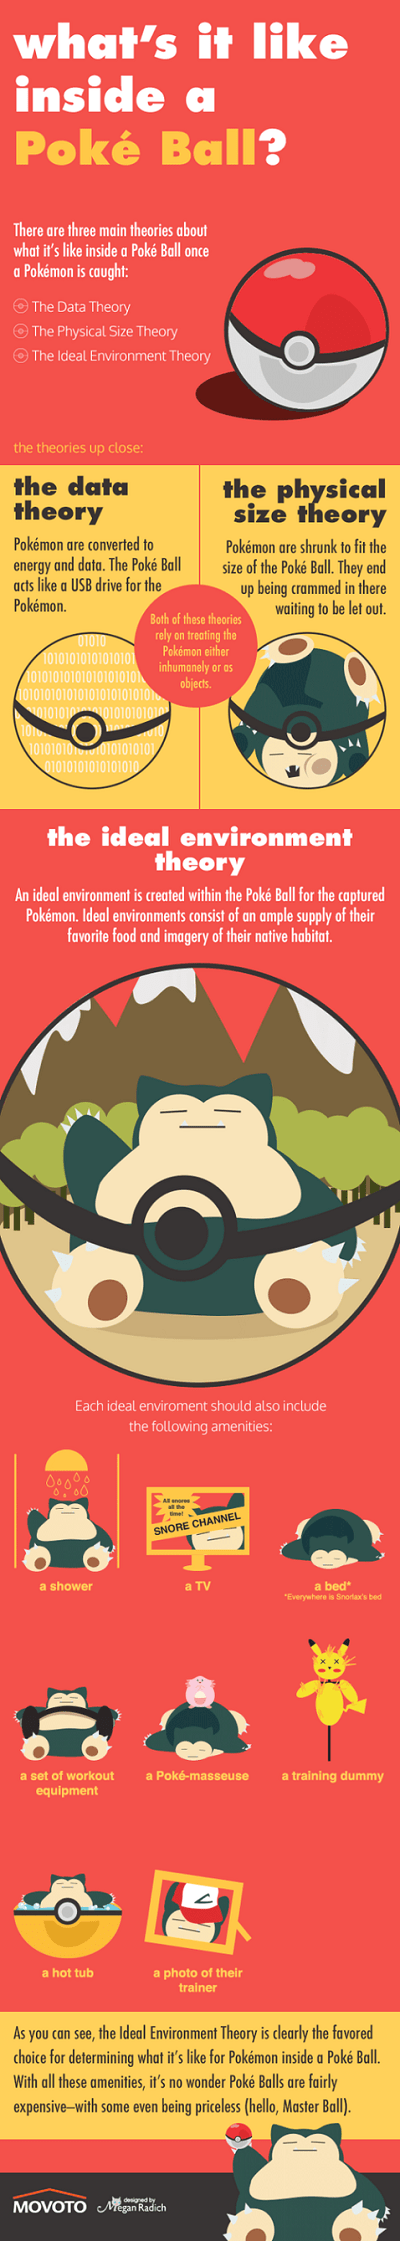 Pokémon snorlax awesome pokeball - 7541366784